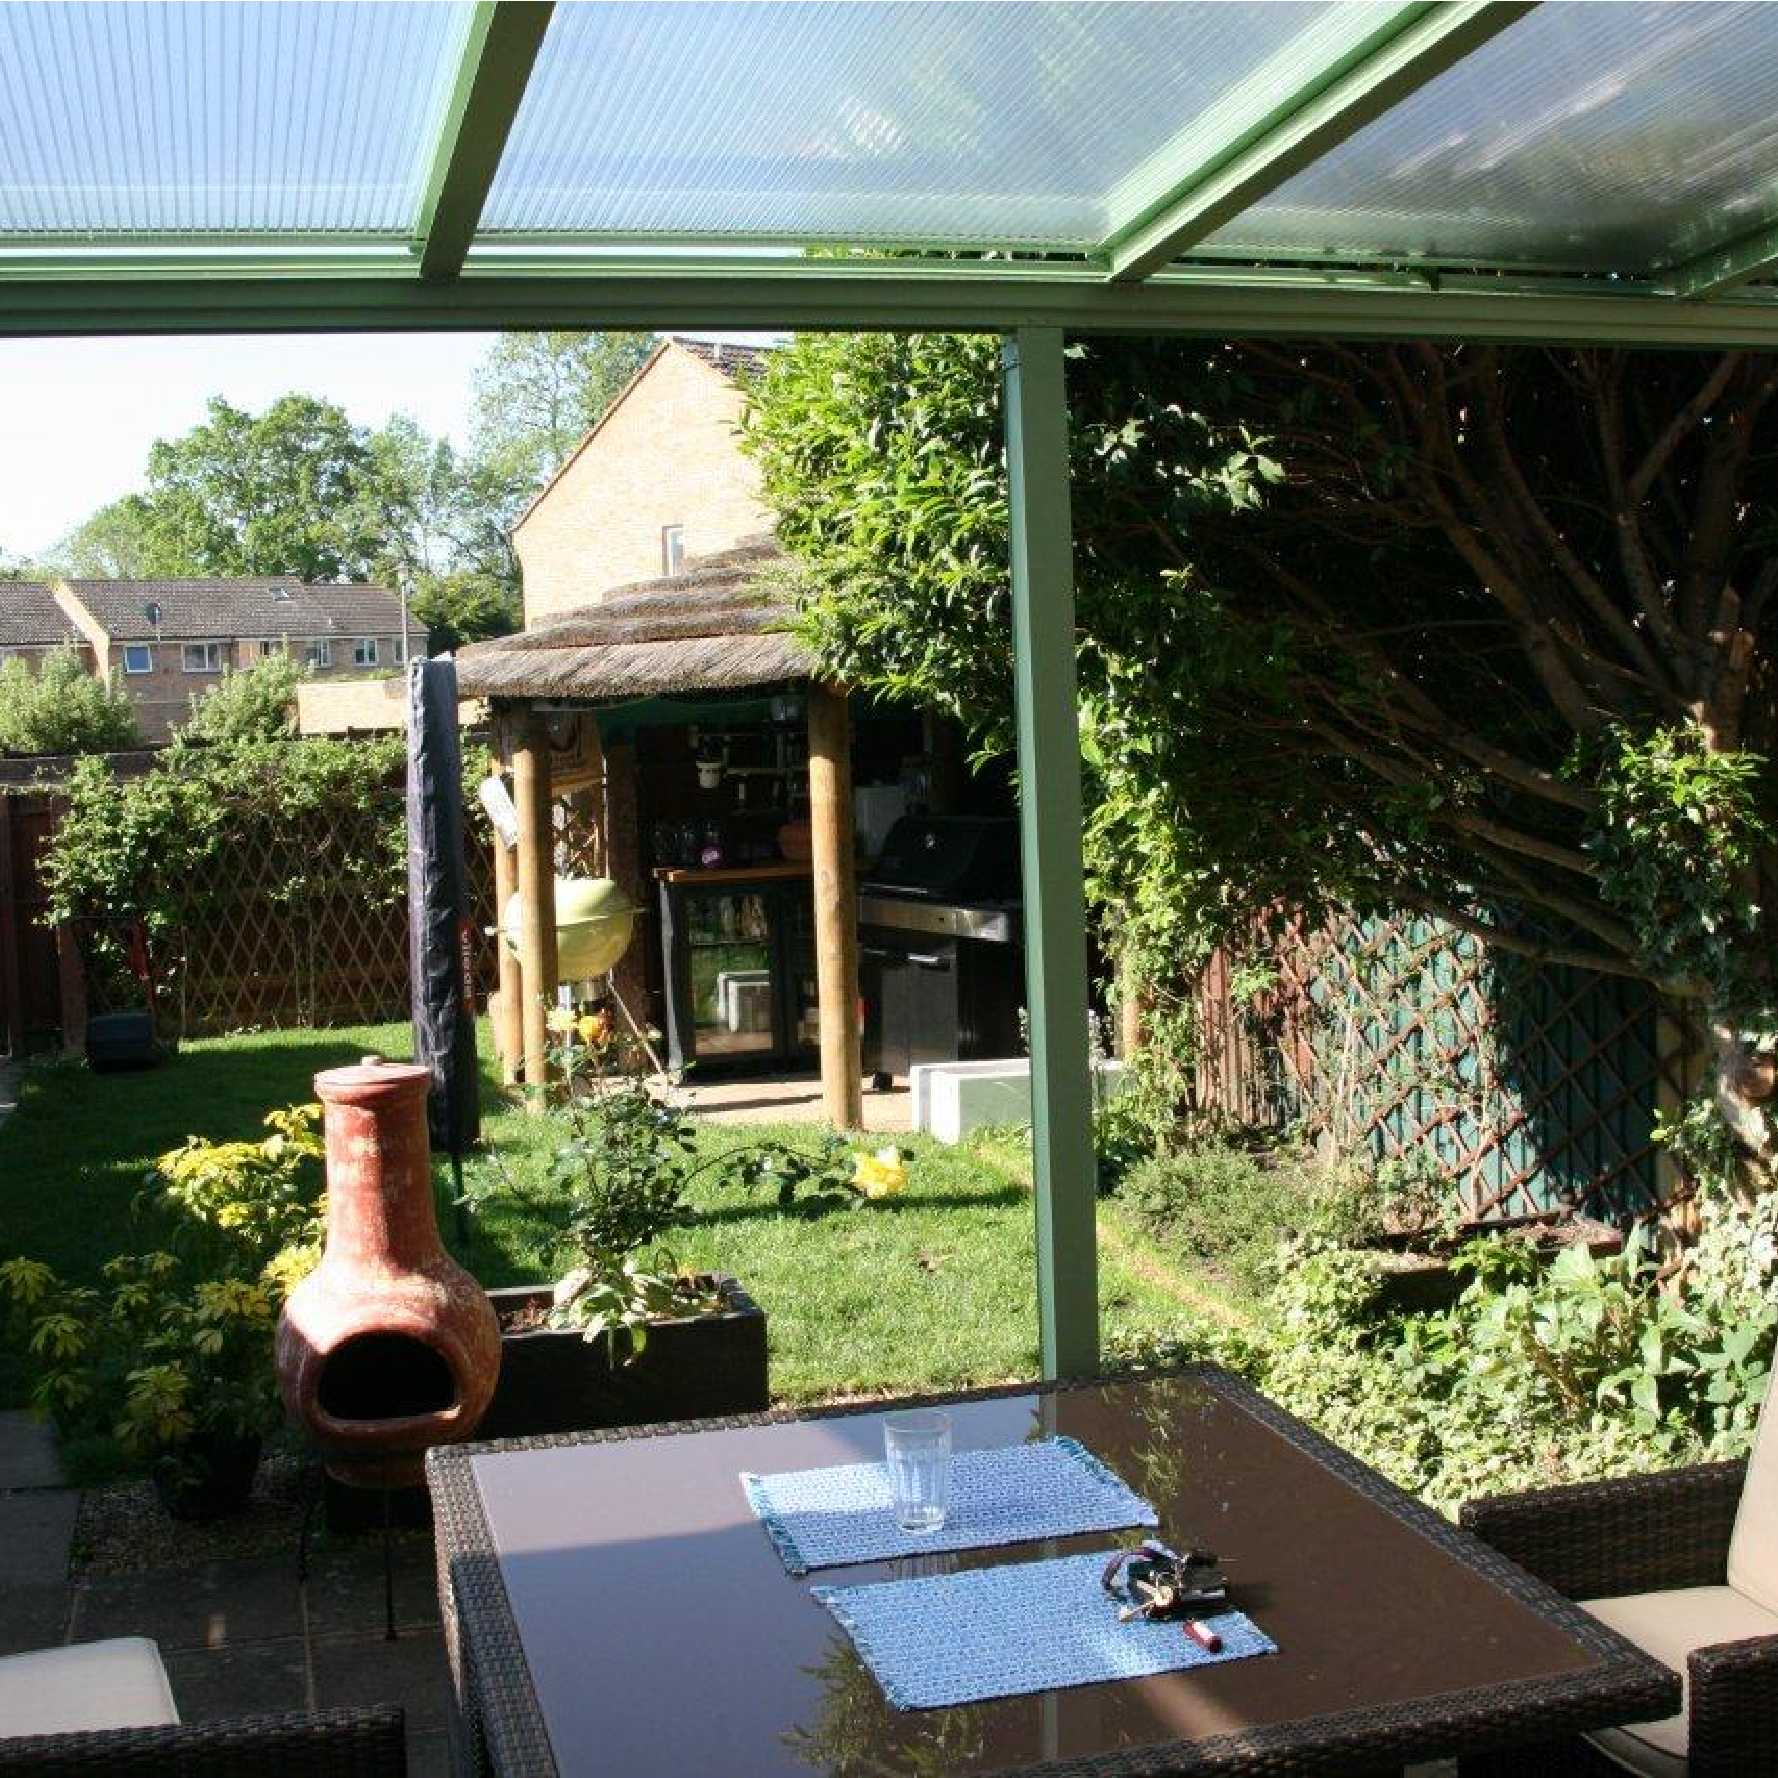 Affordable Omega Smart Lean-To Canopy with 16mm Polycarbonate Glazing - 7.4m (W) x 2.5m (P), (4) Supporting Posts